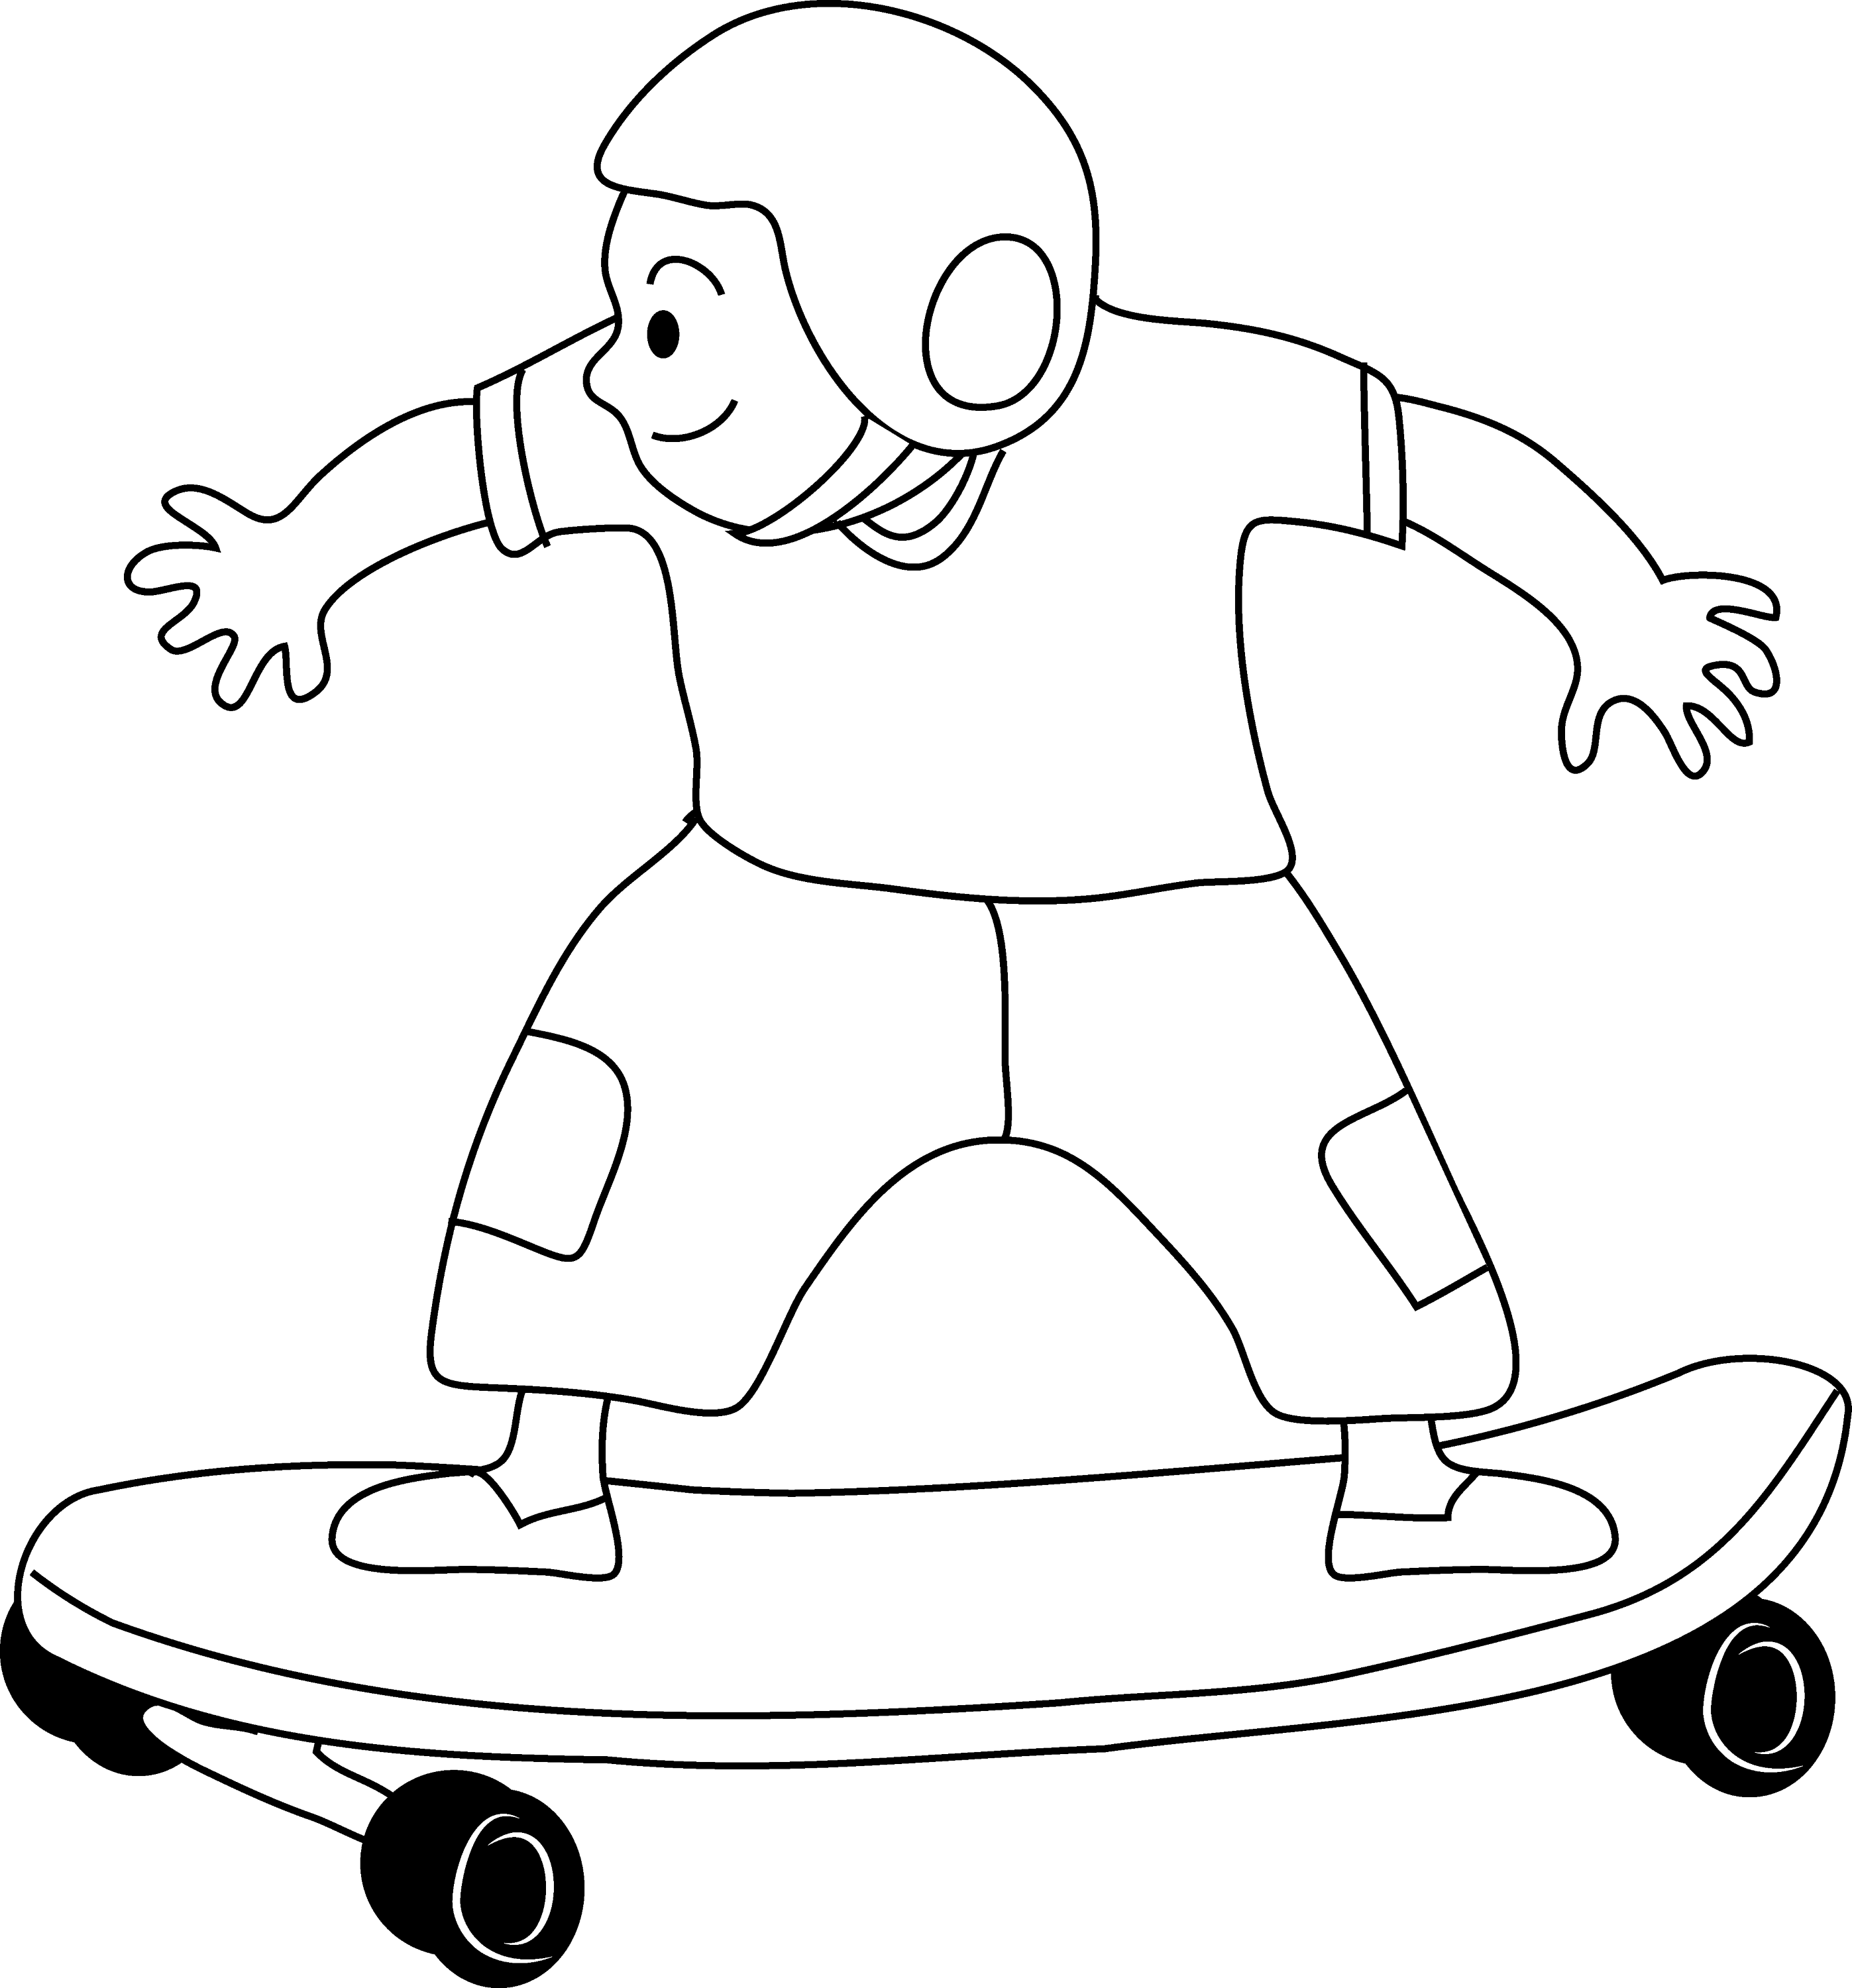 skateboard colouring pages skateboard coloring pages skateboard colouring pages